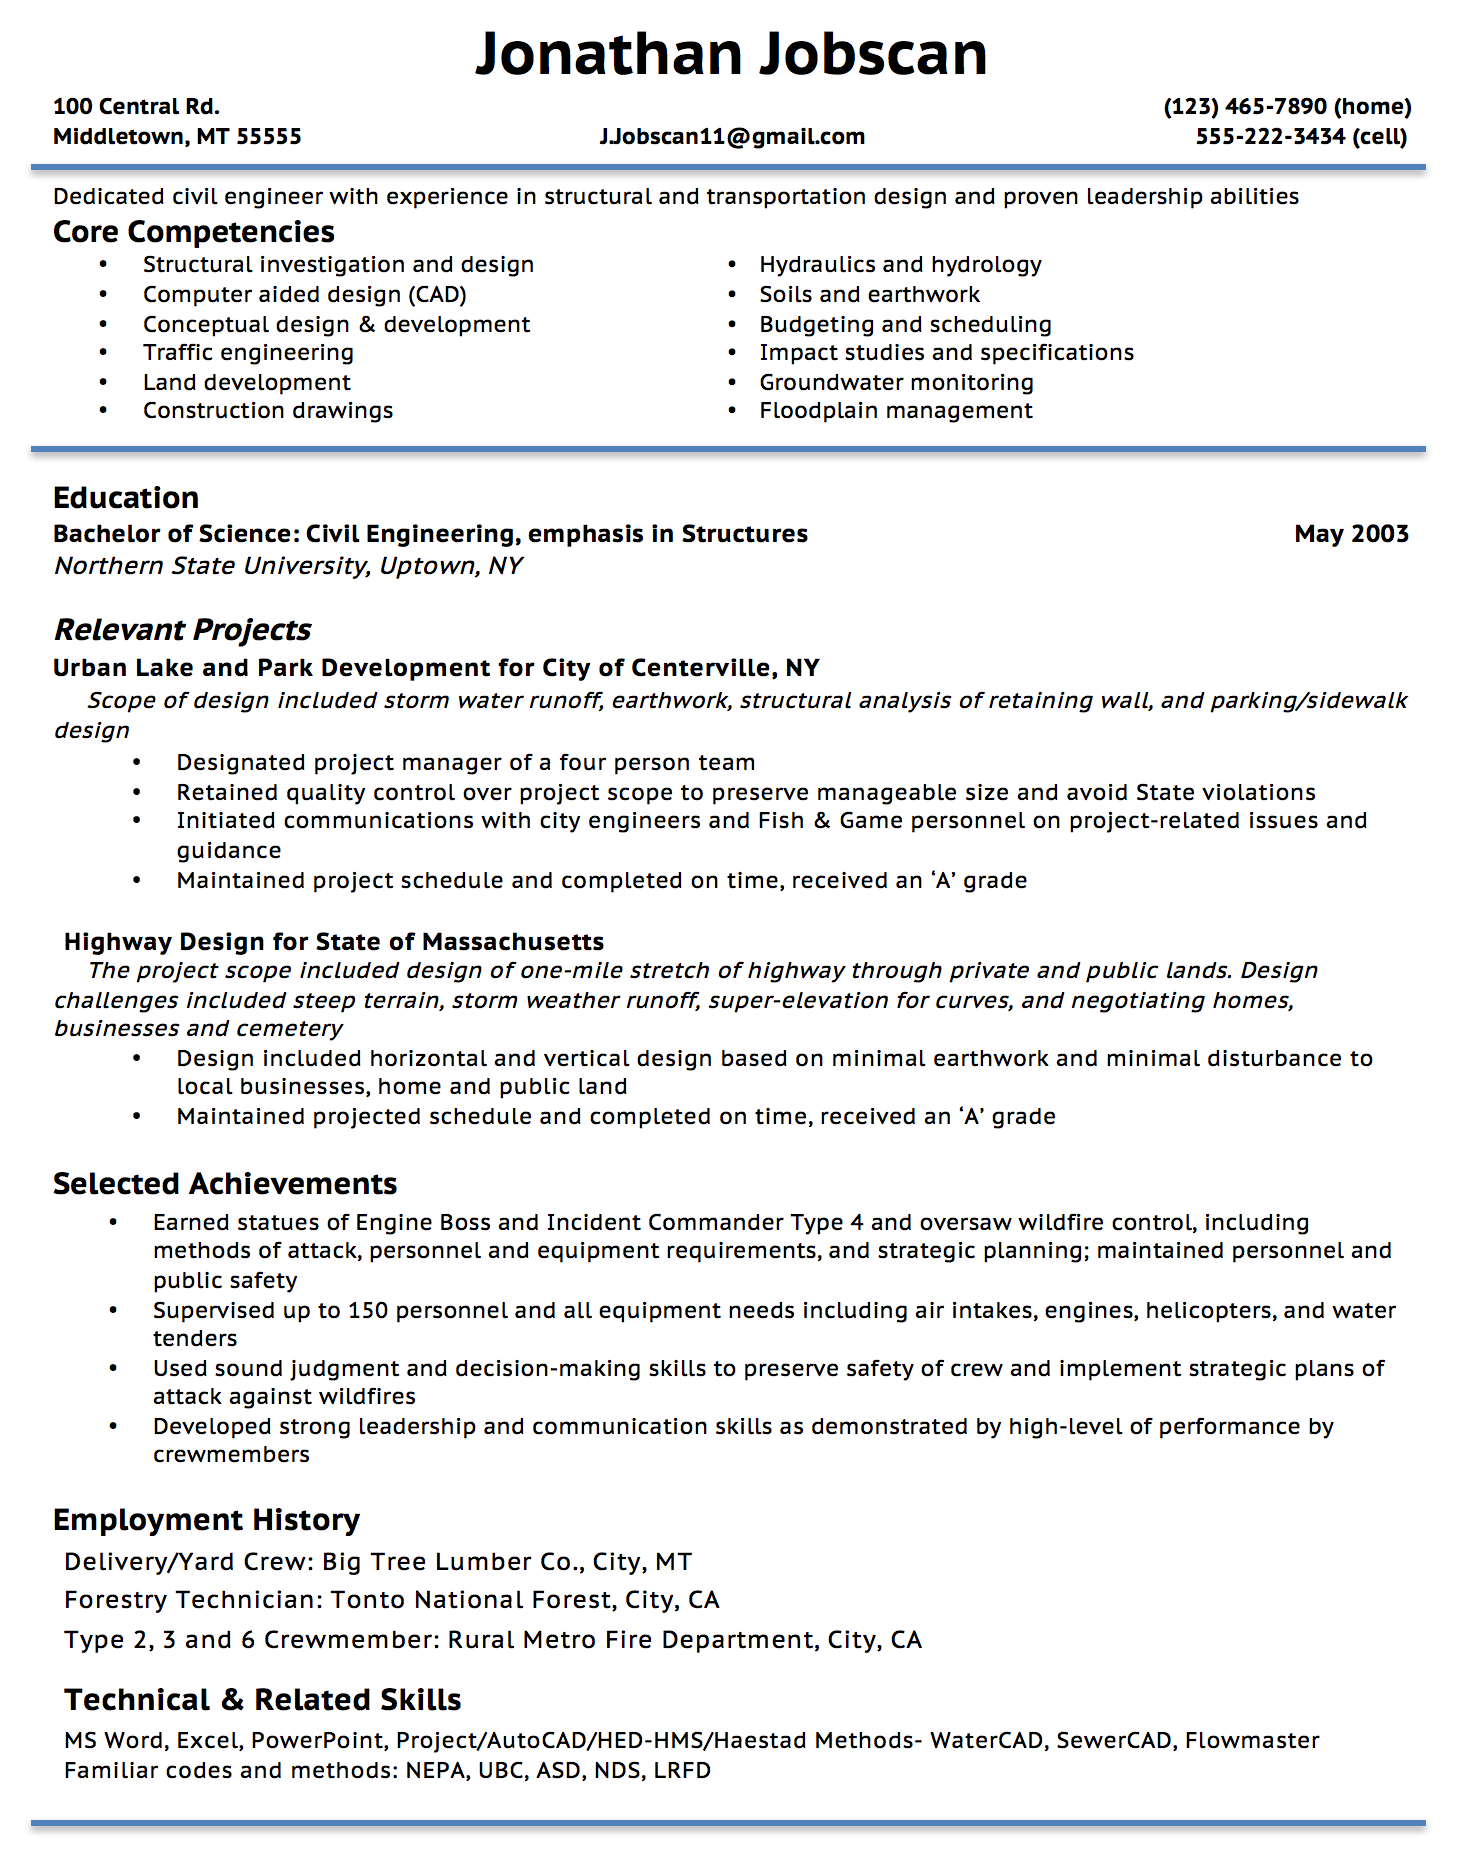 Opposenewapstandardsus  Splendid Resume Writing Guide  Jobscan With Inspiring Example Of A Functional Resume Format With Nice Resume Template Pages Also How To Make A Resume In Word In Addition Business Analyst Resume Samples And Purchasing Agent Resume As Well As Sample Chronological Resume Additionally Making A Good Resume From Jobscanco With Opposenewapstandardsus  Inspiring Resume Writing Guide  Jobscan With Nice Example Of A Functional Resume Format And Splendid Resume Template Pages Also How To Make A Resume In Word In Addition Business Analyst Resume Samples From Jobscanco